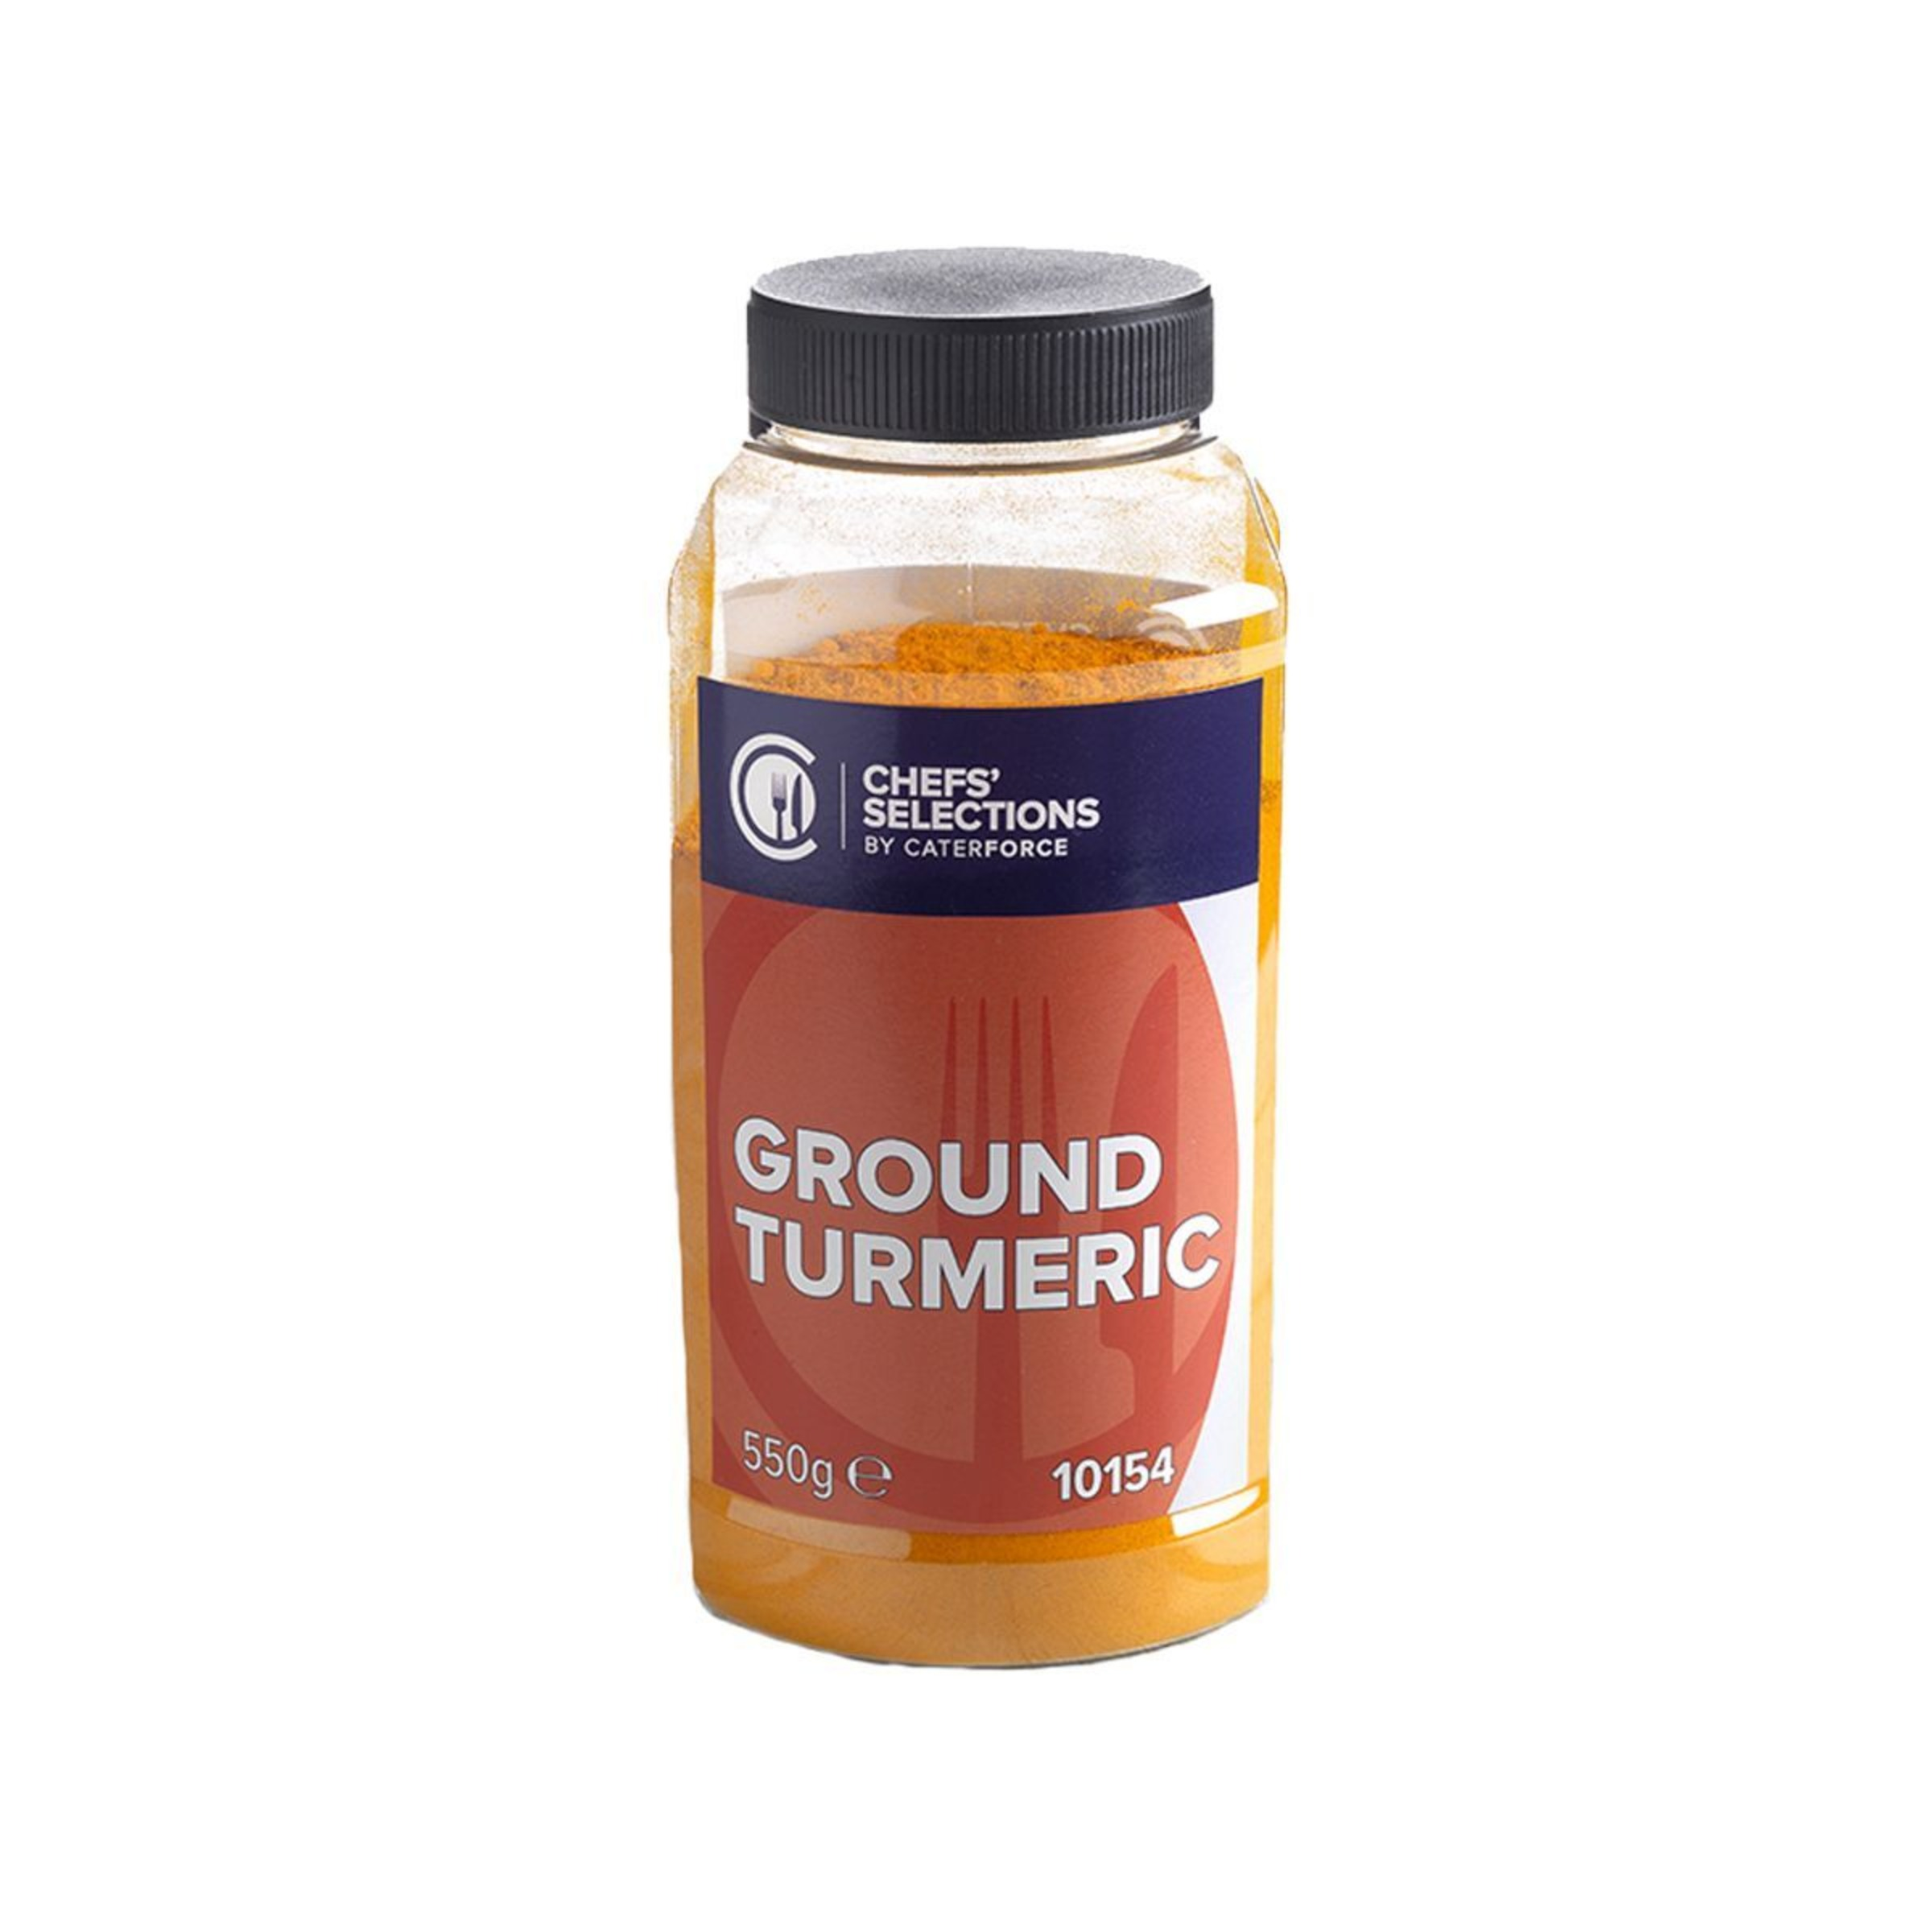 Ground Turmeric 1x550g